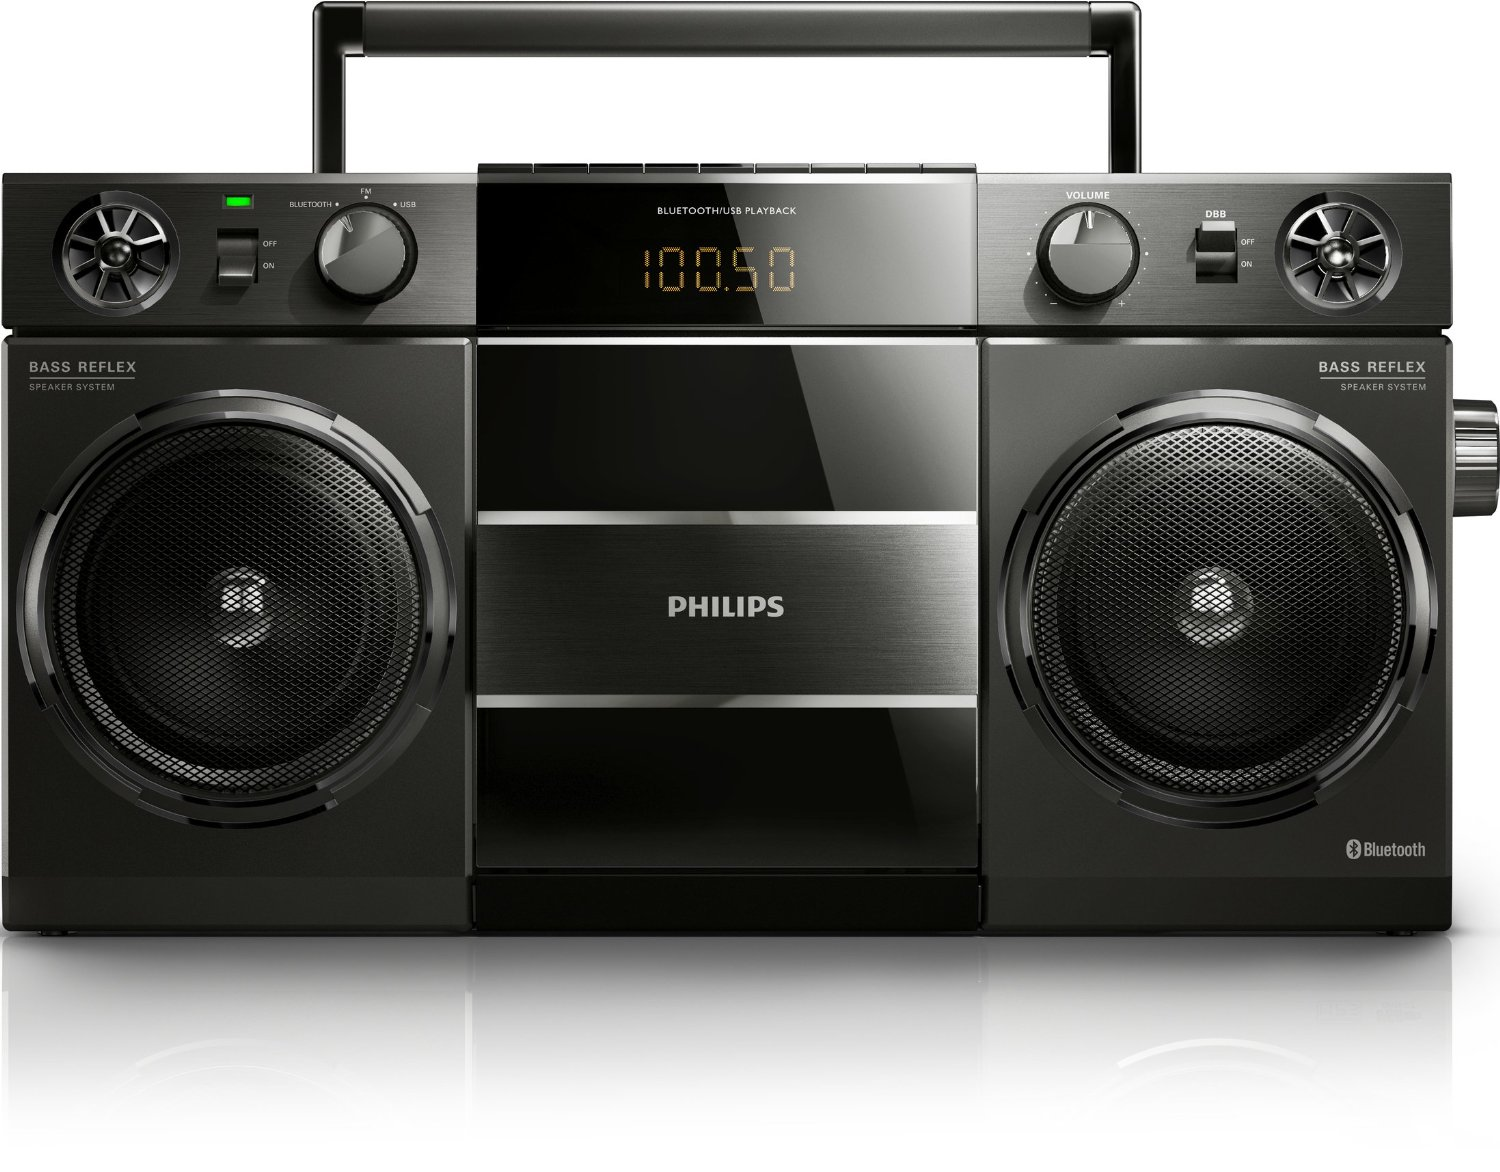 philips bluetooth boombox retro ghettoblaster radio speaker hi fi sound system ebay. Black Bedroom Furniture Sets. Home Design Ideas